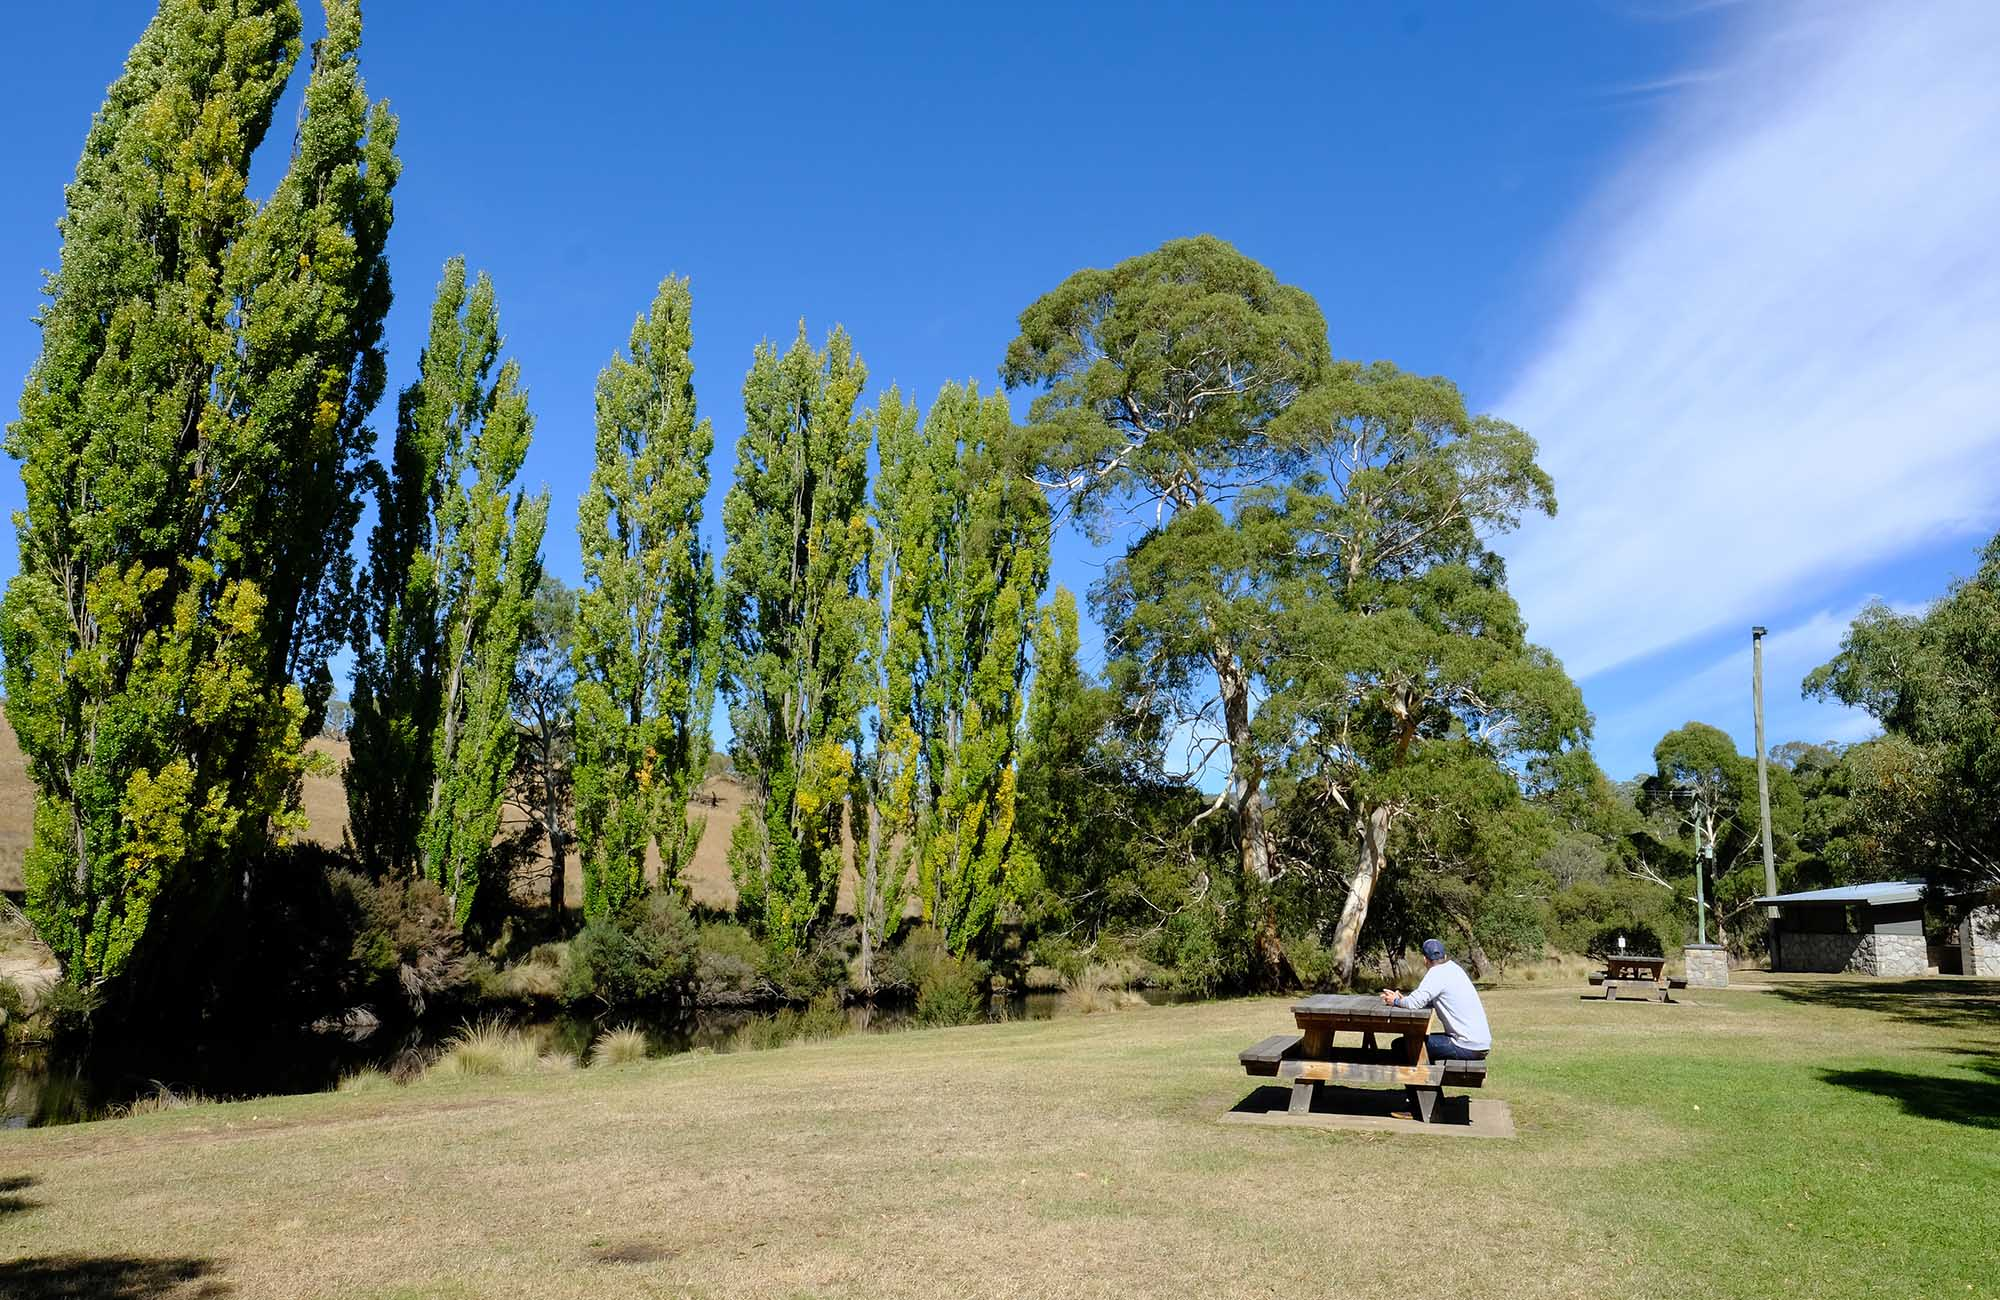 A man sits at a picnic table at Thredbo River picnic area, Kosciuszko National Park. Photo: Elinor Sheargold/DPIE